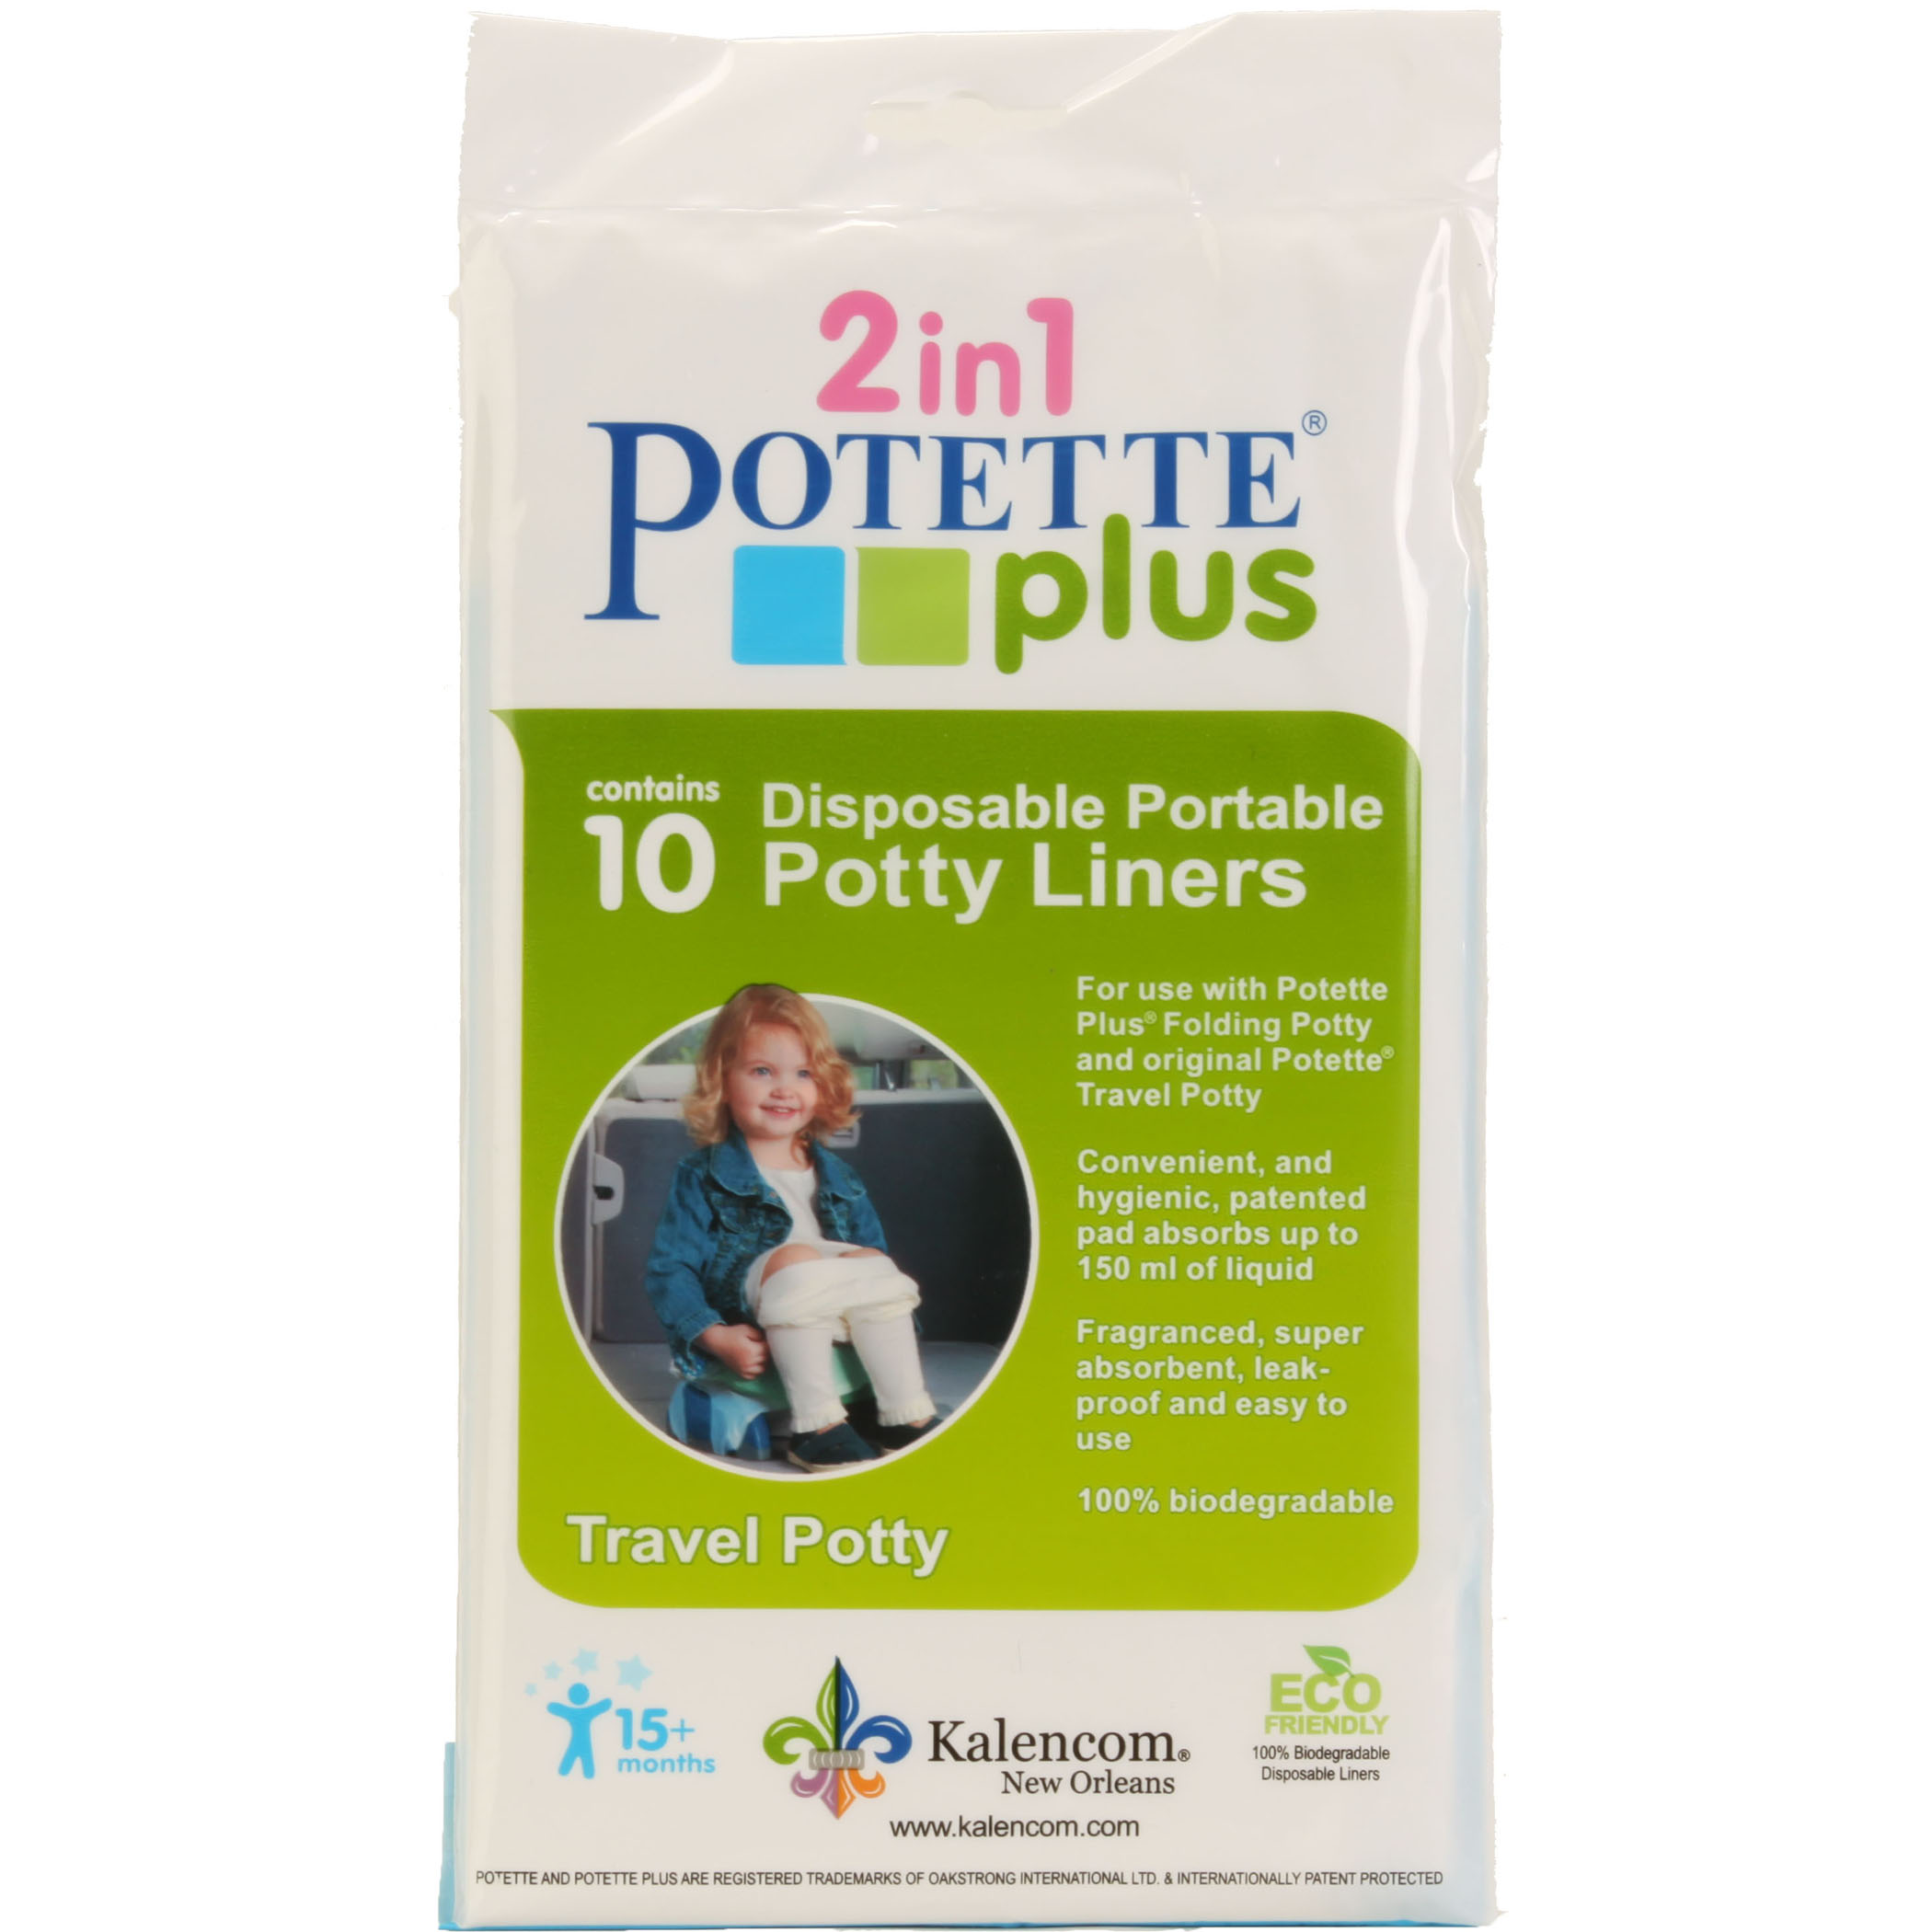 POTETTE PLUS LINERS - 10 Liners